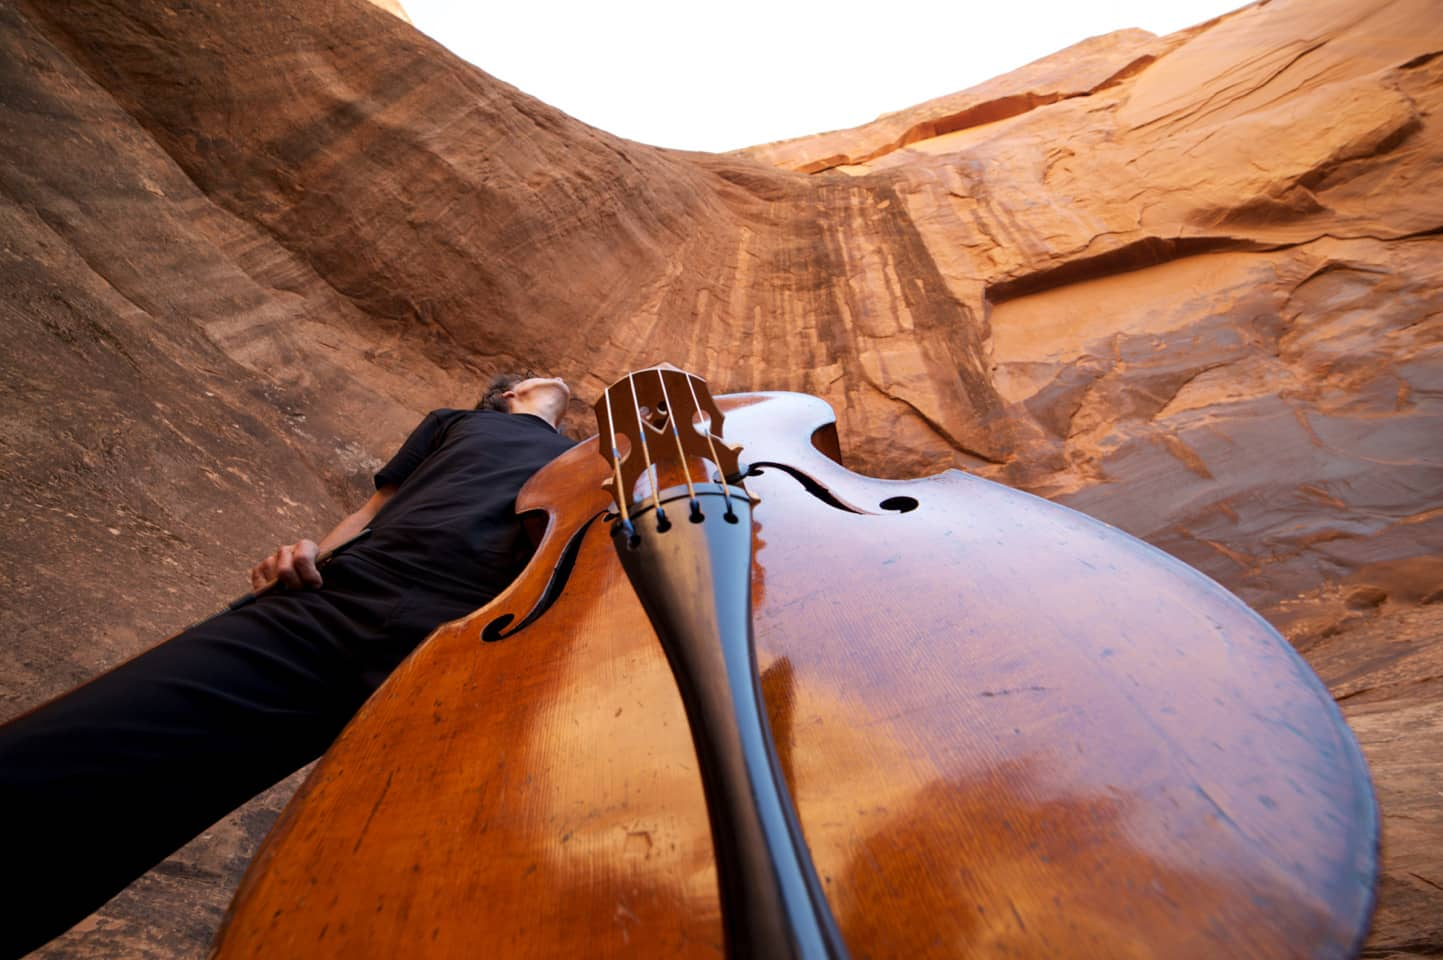 Close-up view of upright bass with man standing behind, and tall rock formation beyond (photo by Gabriel Gomez)